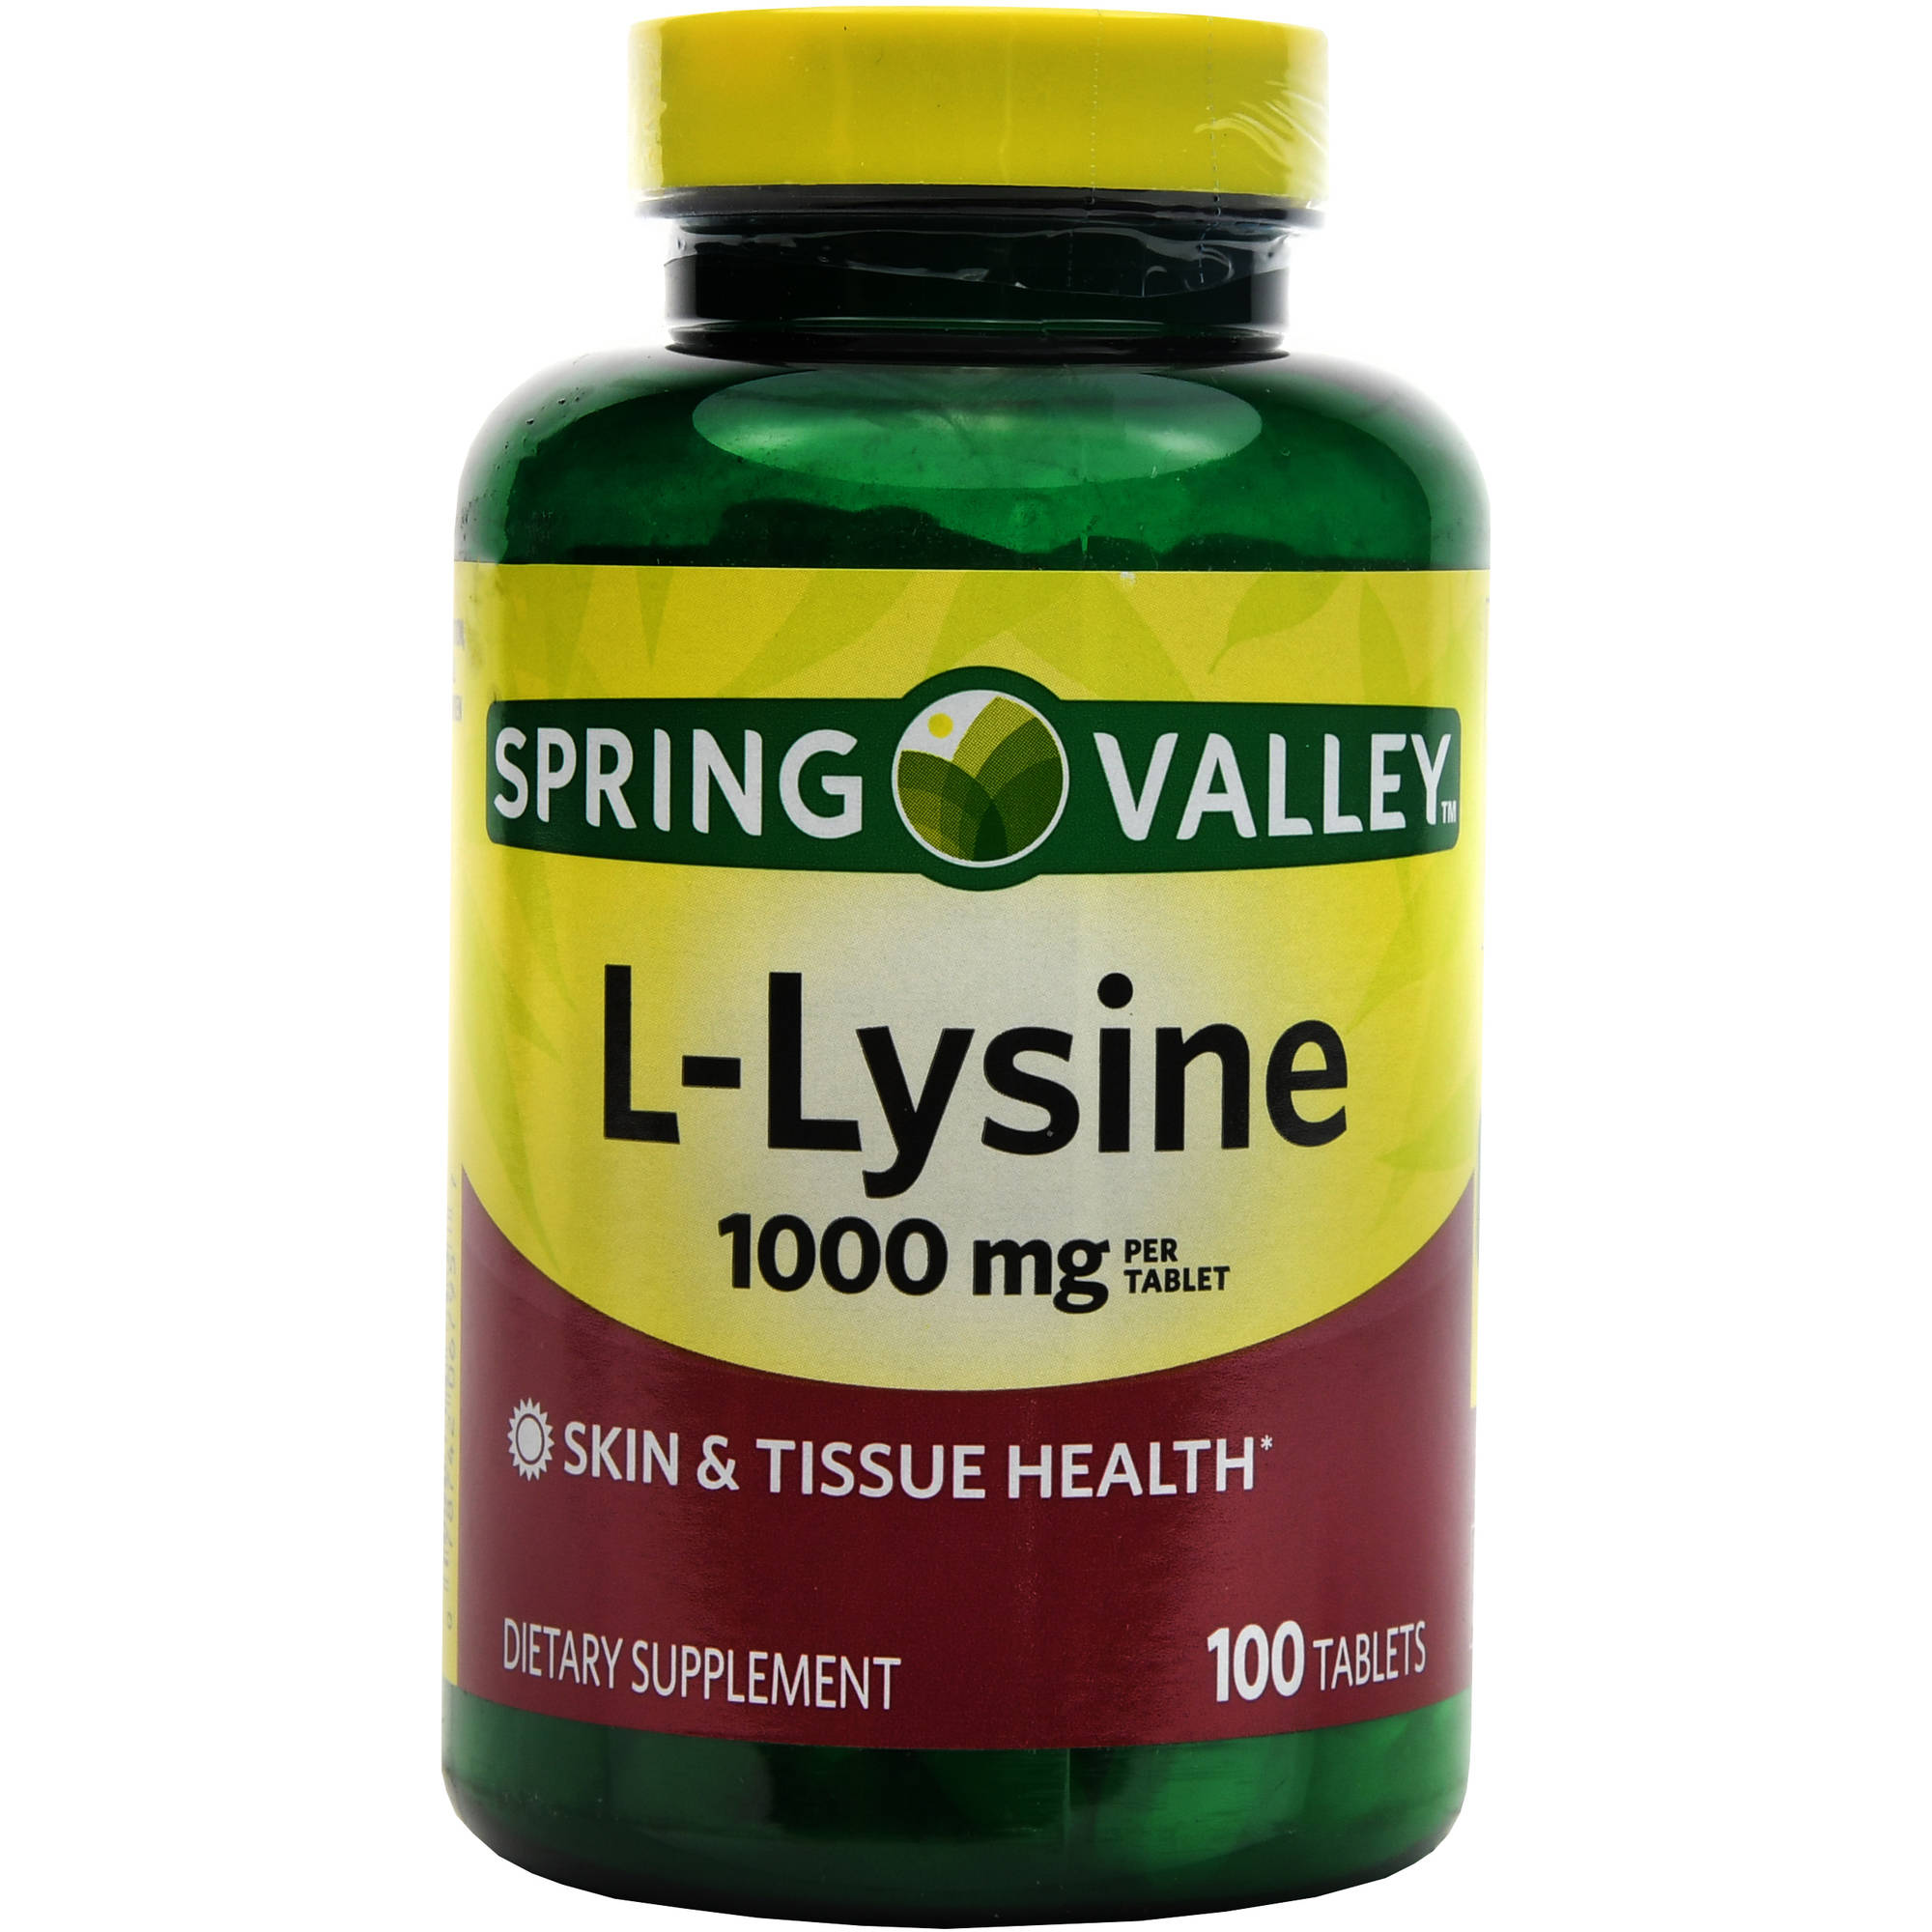 Spring Valley L-Lysine Tablets, 1000 mg, 100 count